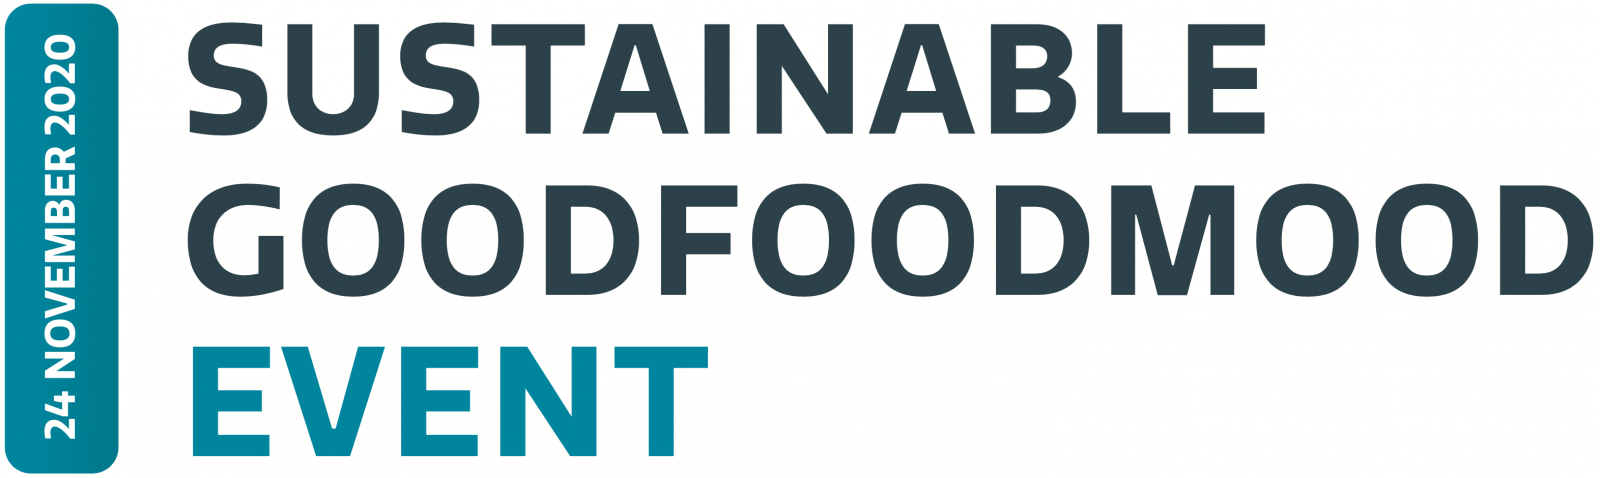 SUSTAINABLE GOODFOODMOOD EVENT